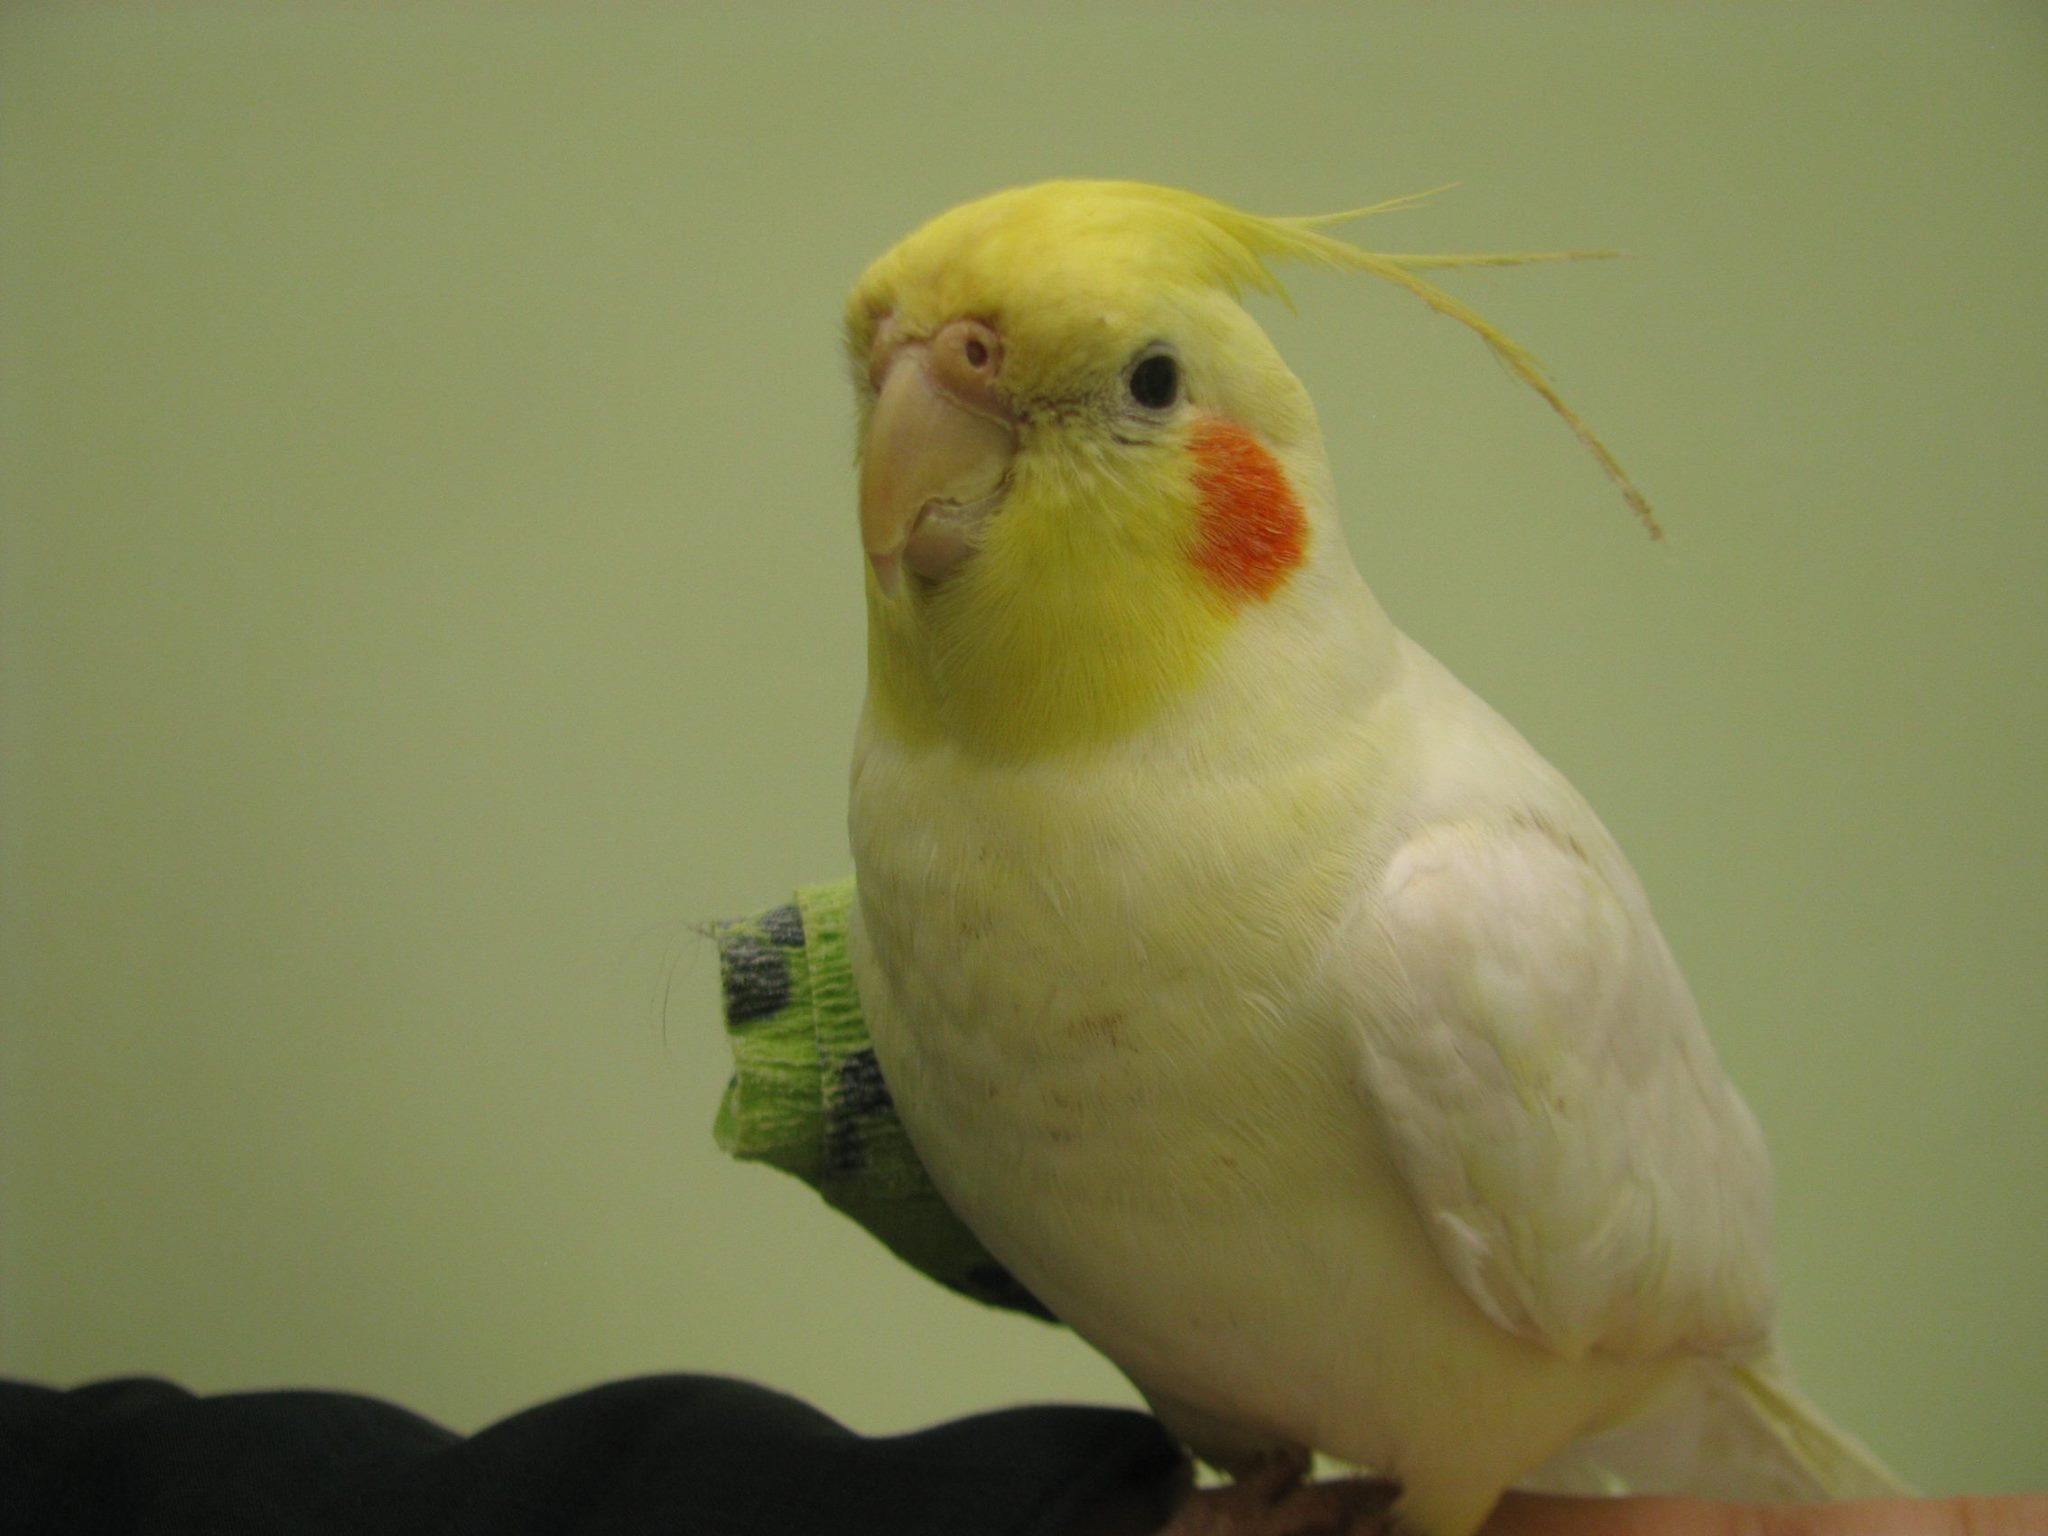 https://0901.nccdn.net/4_2/000/000/046/6ea/cockatiel-and-bandage.jpg